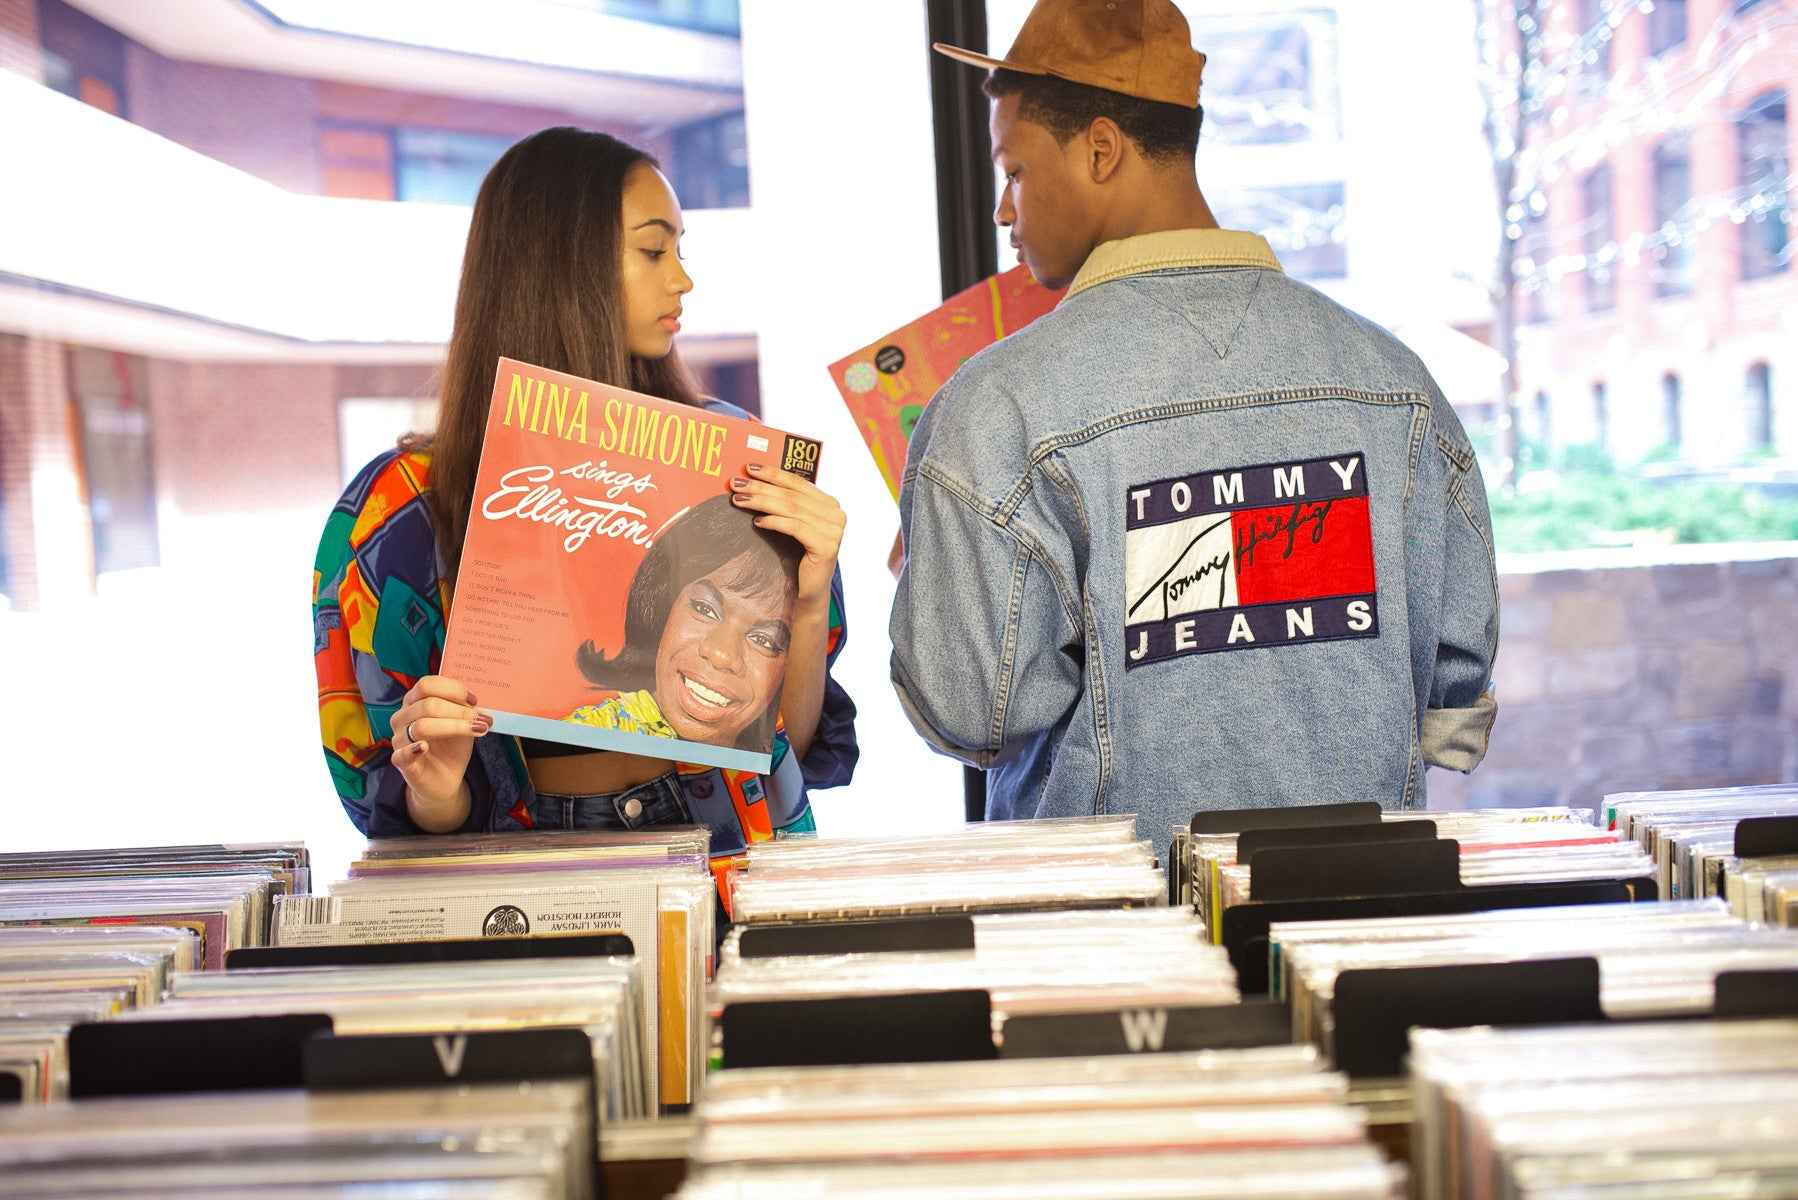 Men and women's vintage 80s and 90s clothes